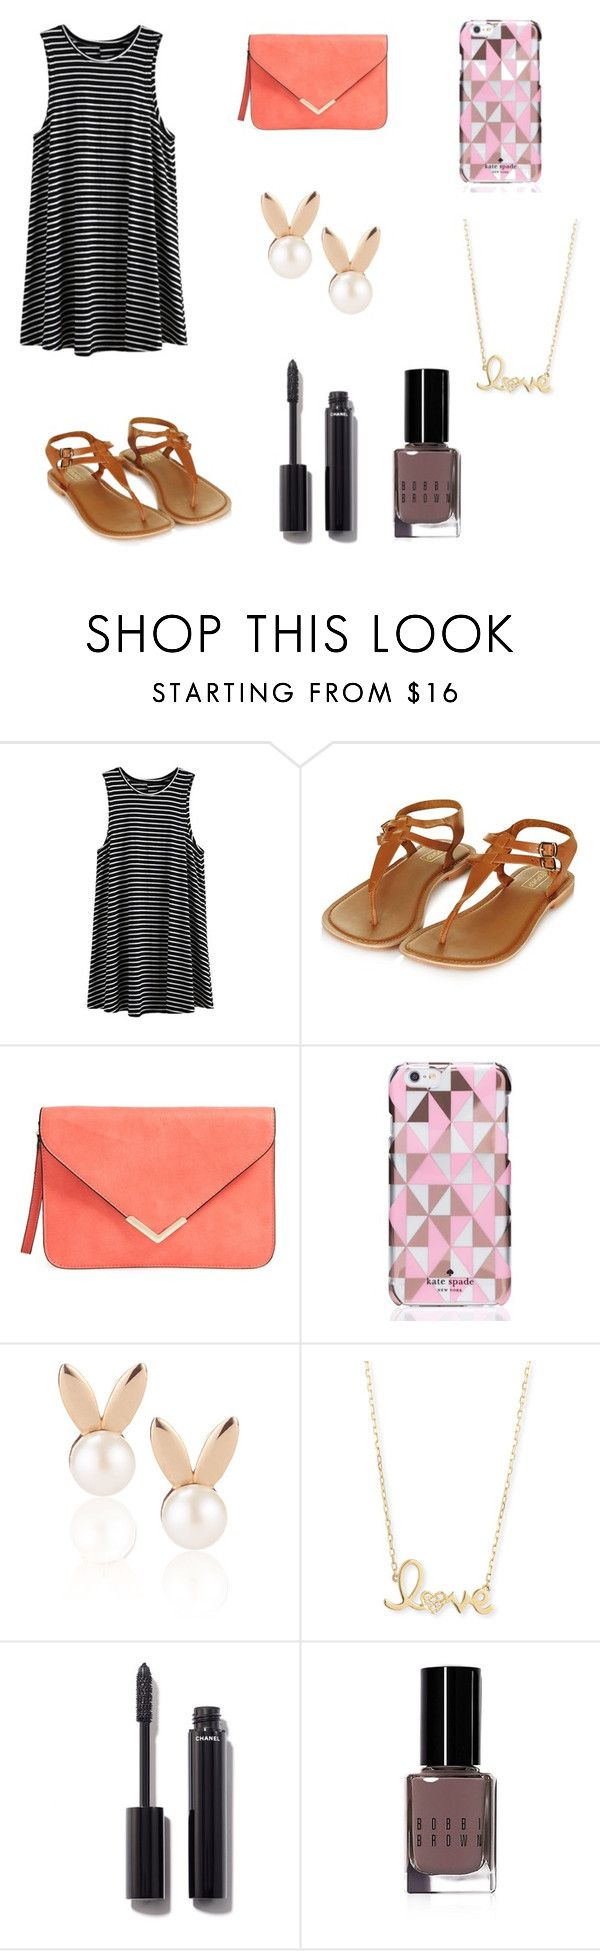 """""""Summer vibes"""" by hellofashion22 ❤ liked on Polyvore featuring Topshop, Kate Spade, Aamaya by priyanka, Sydney Evan, Chanel and Bobbi Brown Cosmetics"""